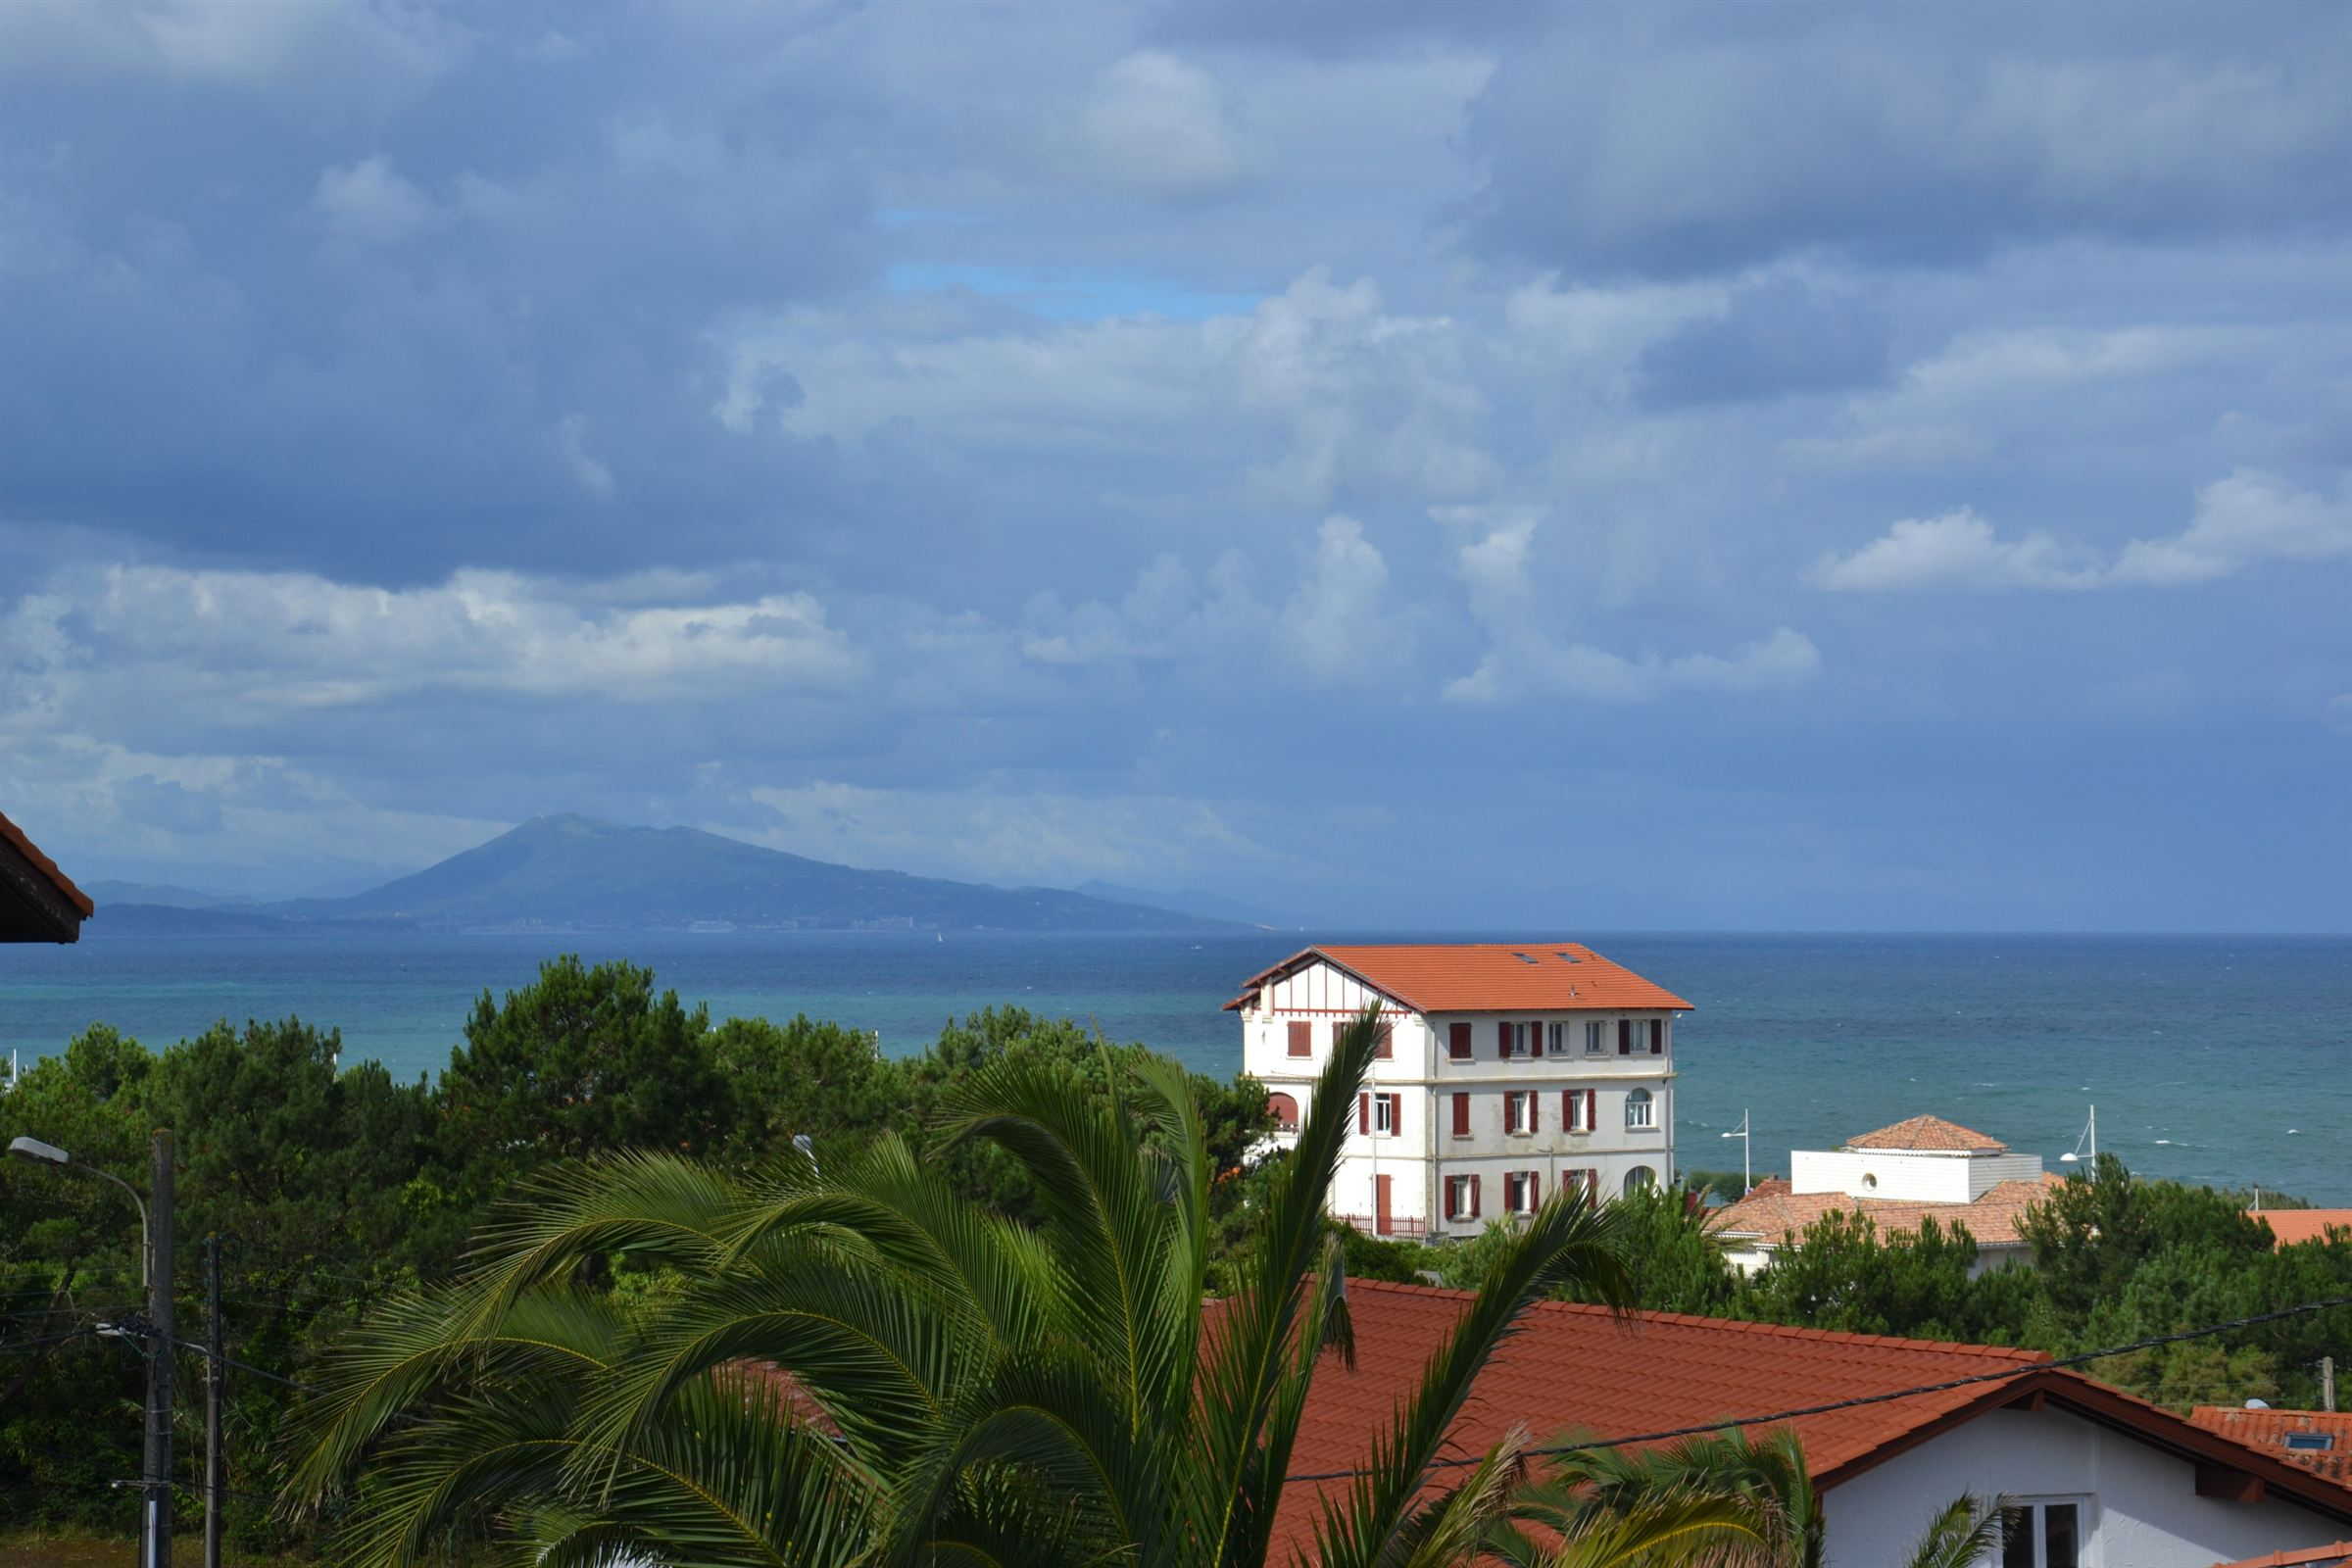 Single Family Home for Sale at Biarritz Milady vue océan et montagnes Biarritz, Aquitaine, 64200 France